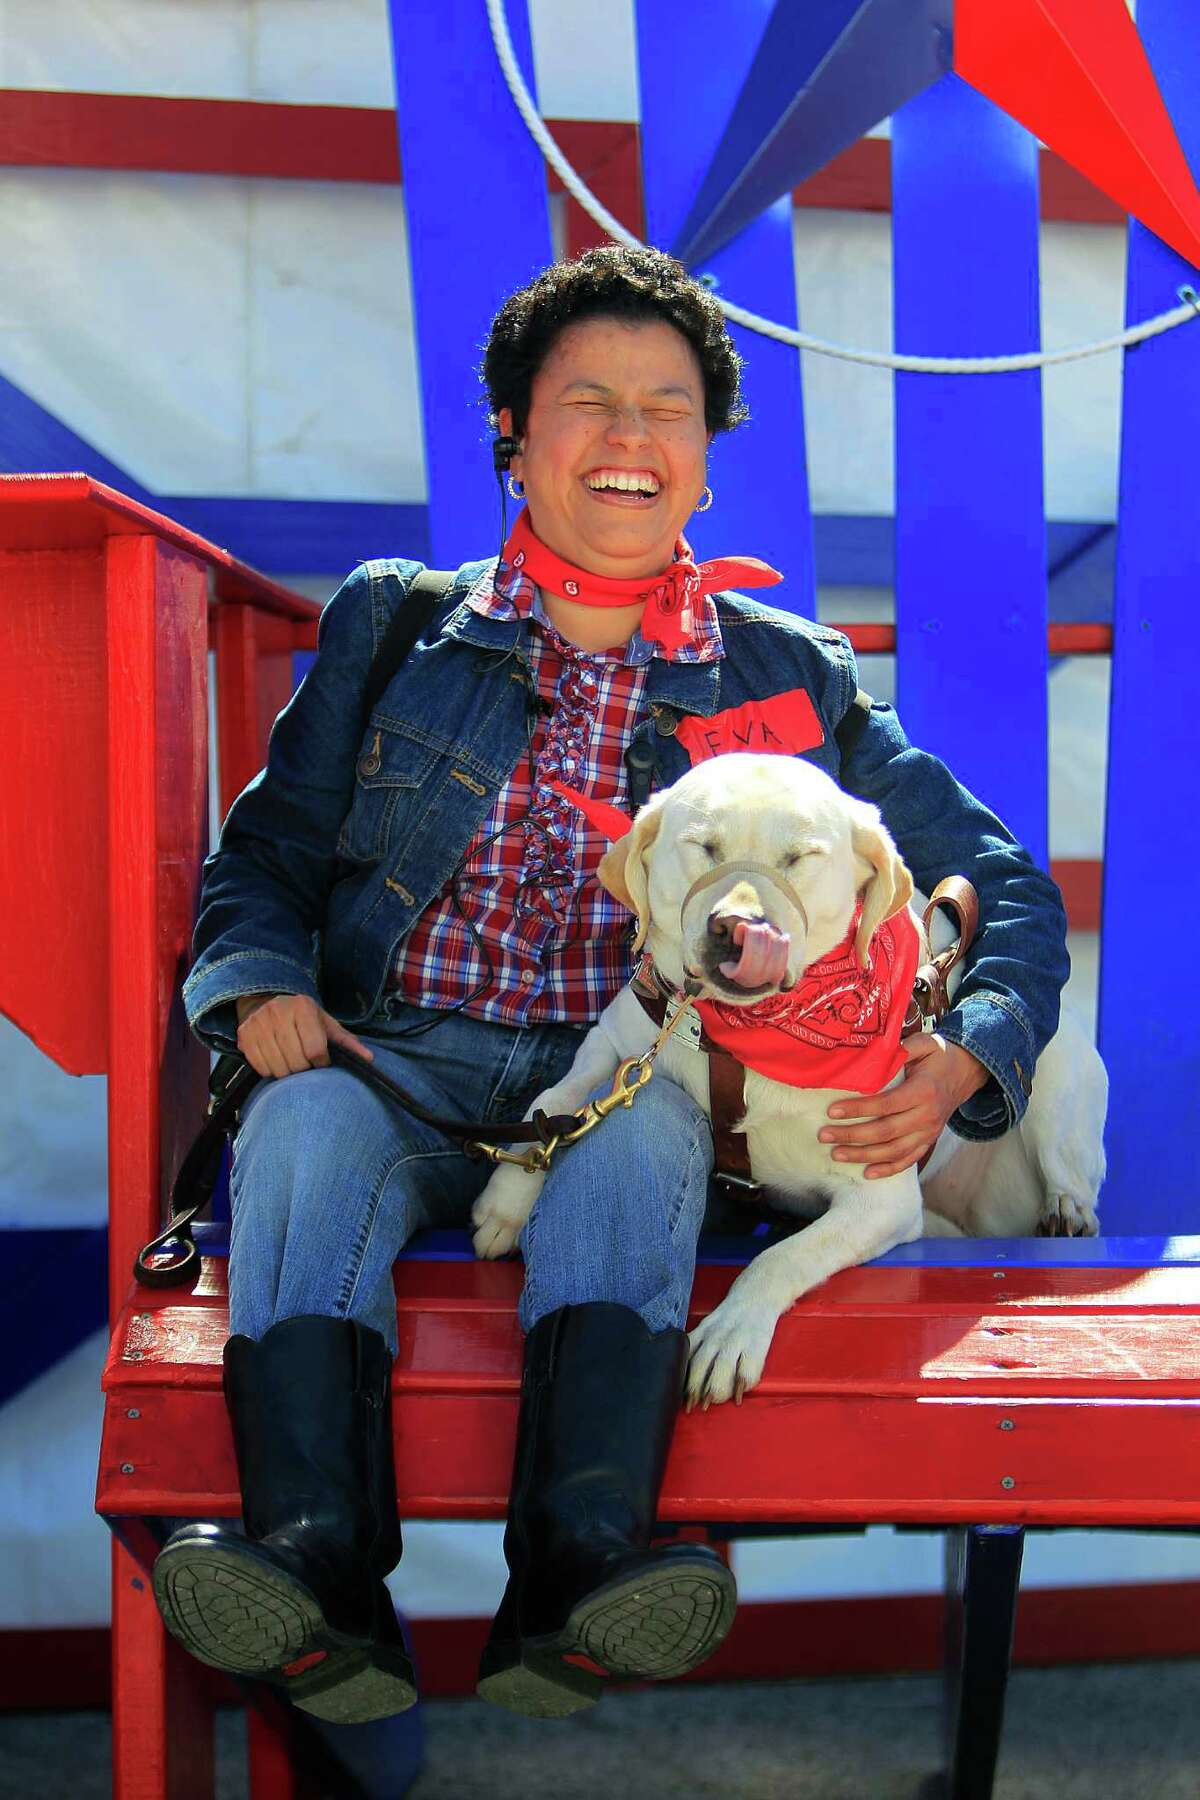 Eva Bergara laughs as she has her picture taken with Kim, her seeing eye dog, in a giant chair during a VIP tour of the World's Championship BBQ contest Thursday, Feb. 25, 2016, in Houston. Vergara, who is blind, was enjoying a multi-sensory tour of the BBQ contest.